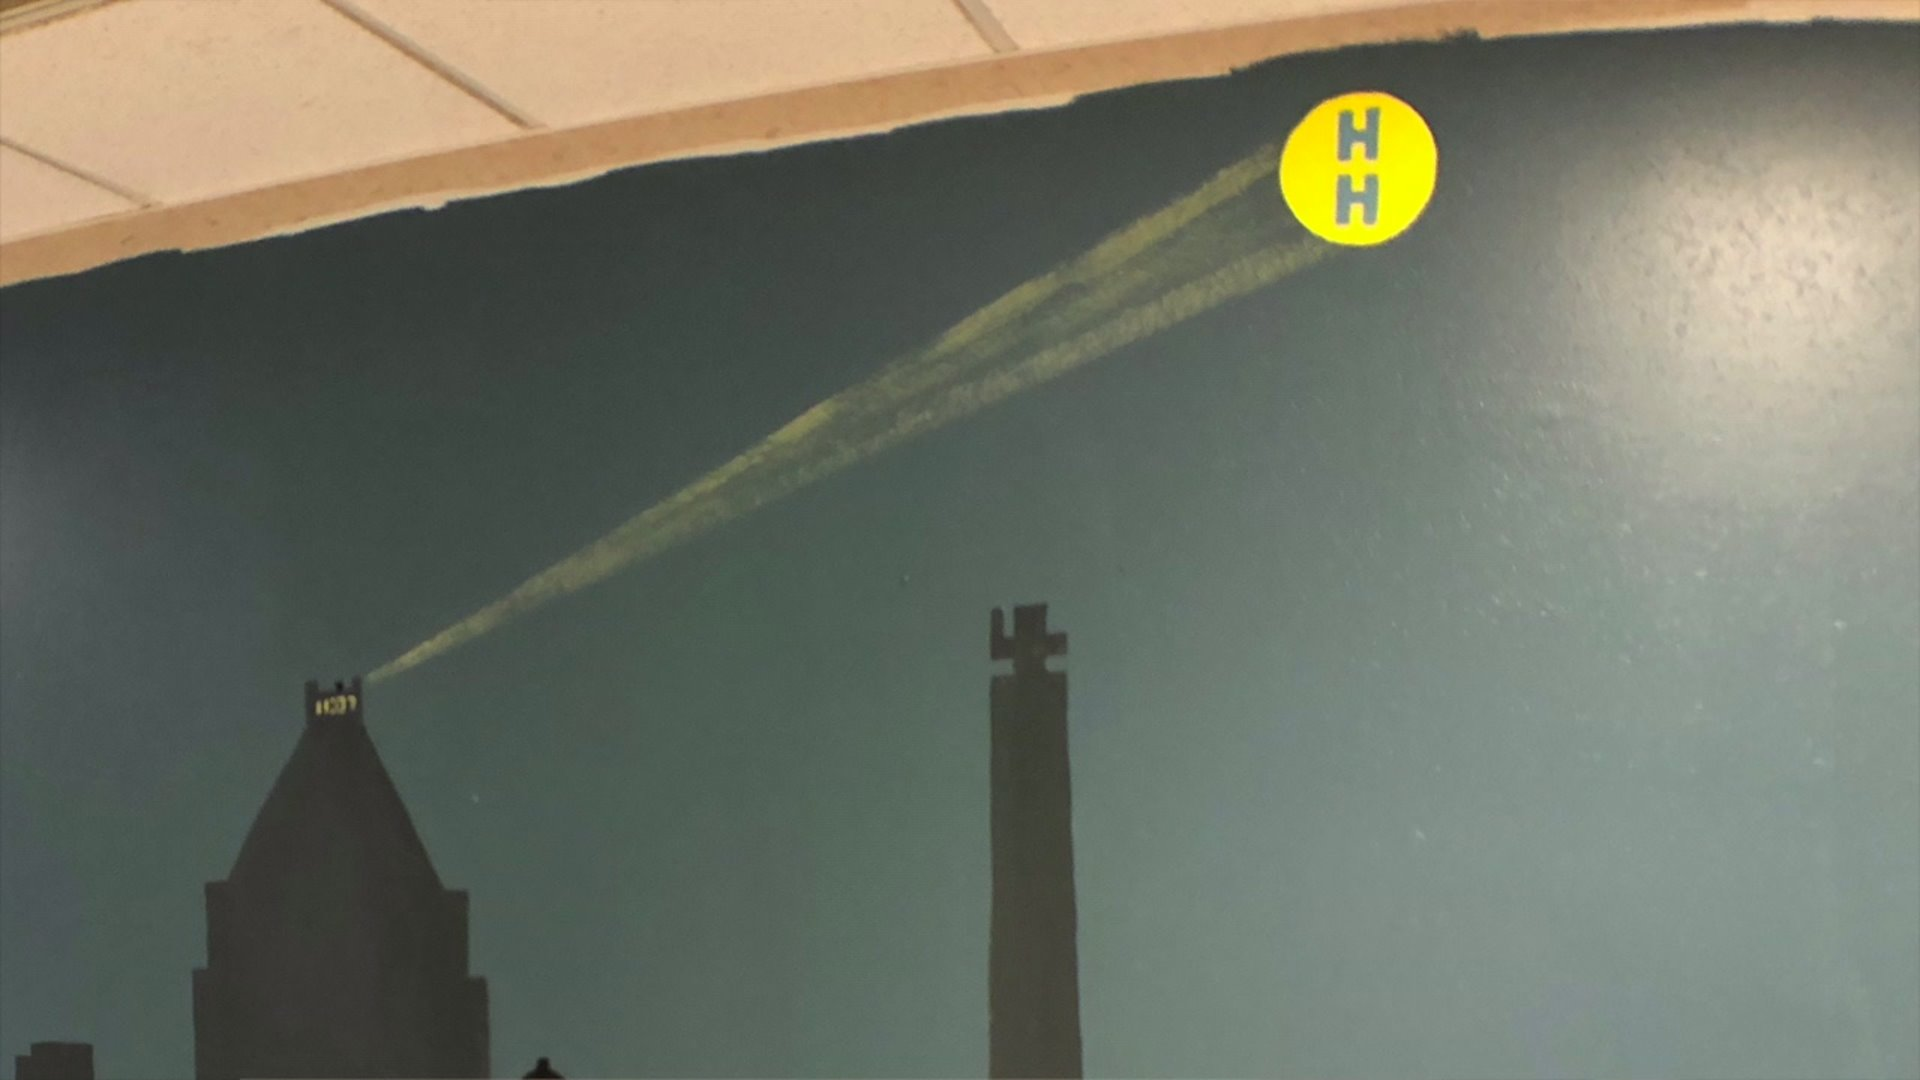 Mural painted to encourage 'hospital heroes' at Cone Health campus